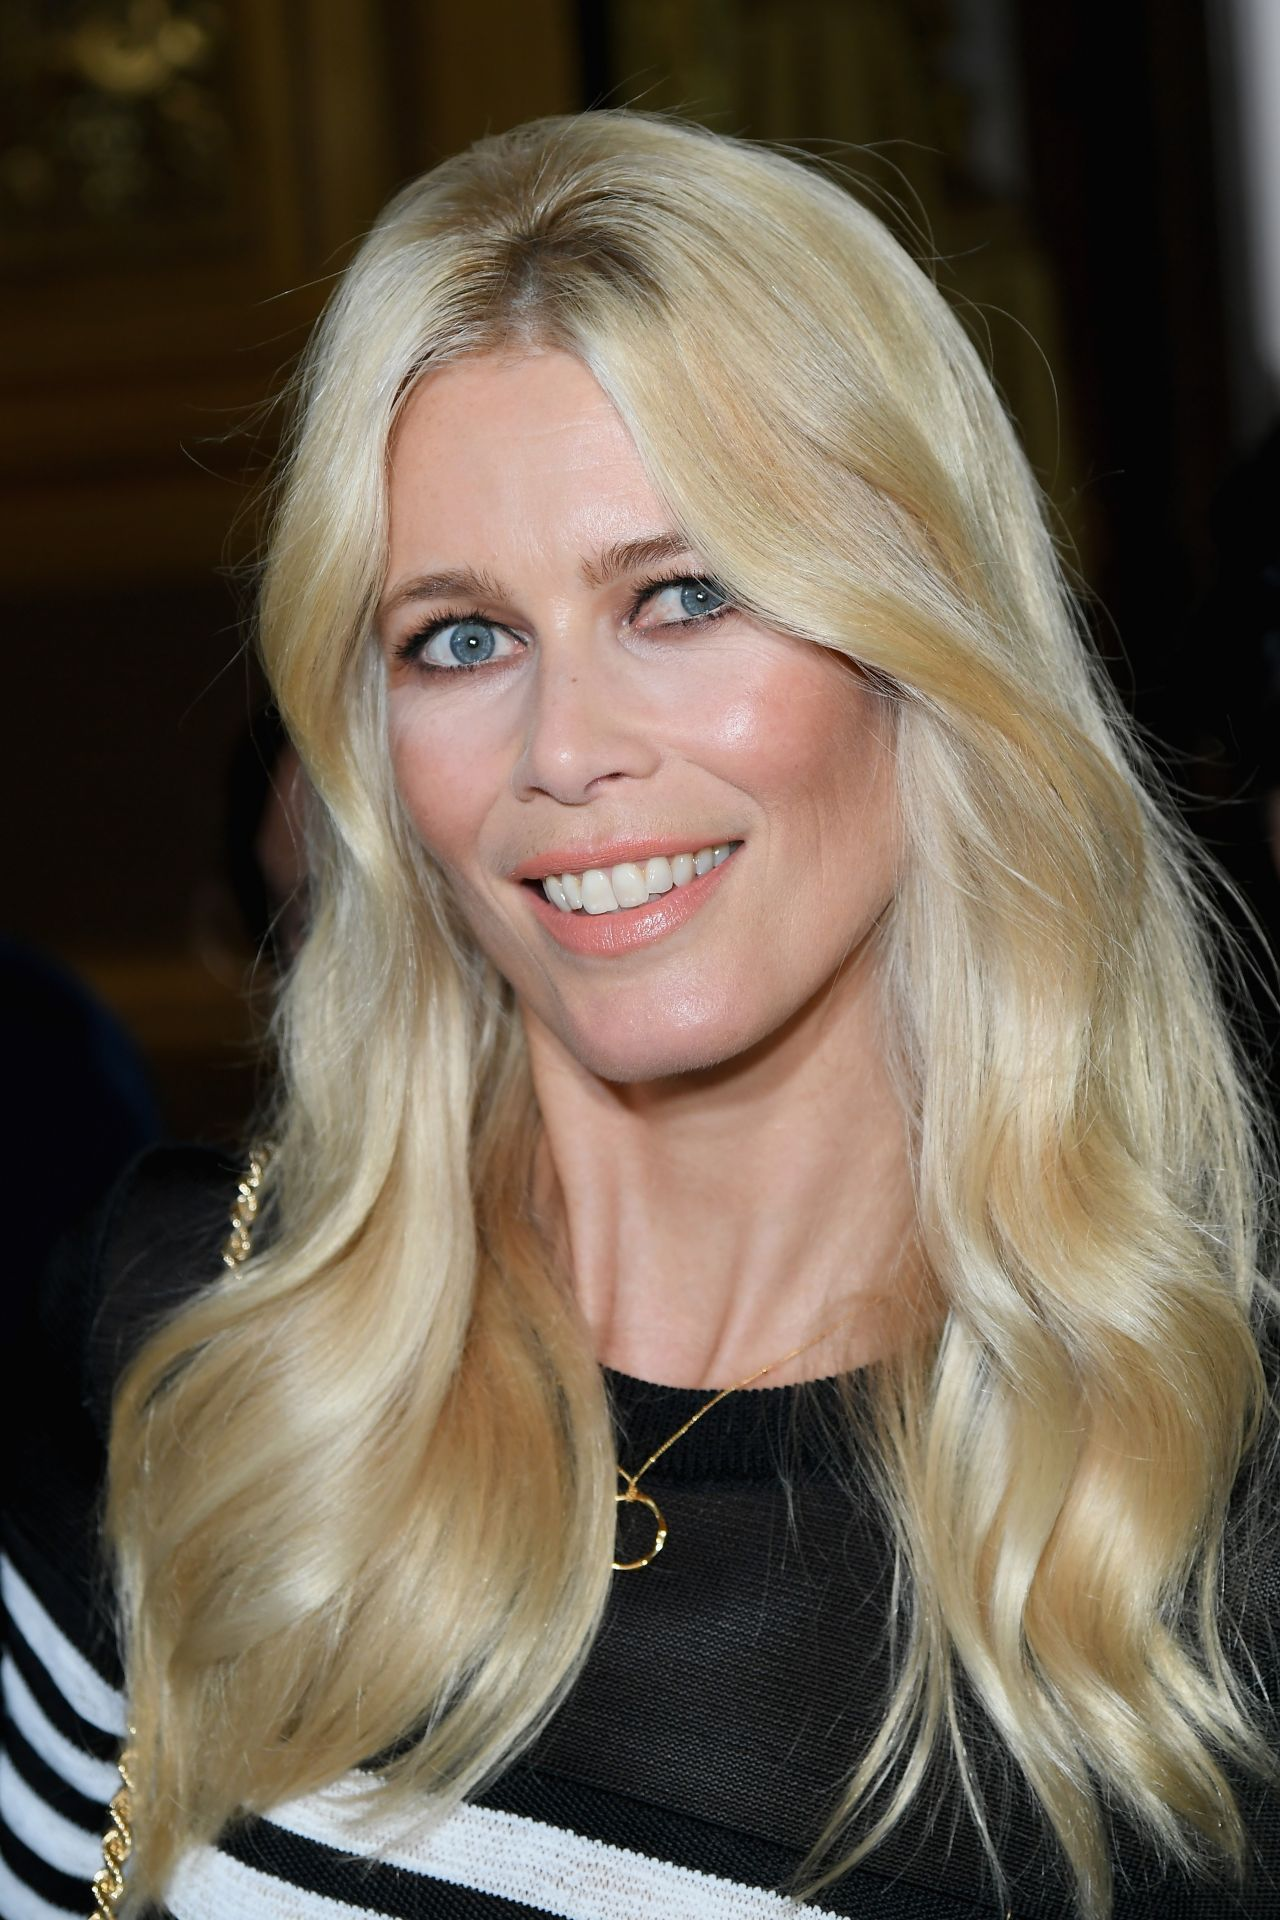 Claudia Schiffer Balmain Fashion Show Paris Lexee Smith Personal Pics